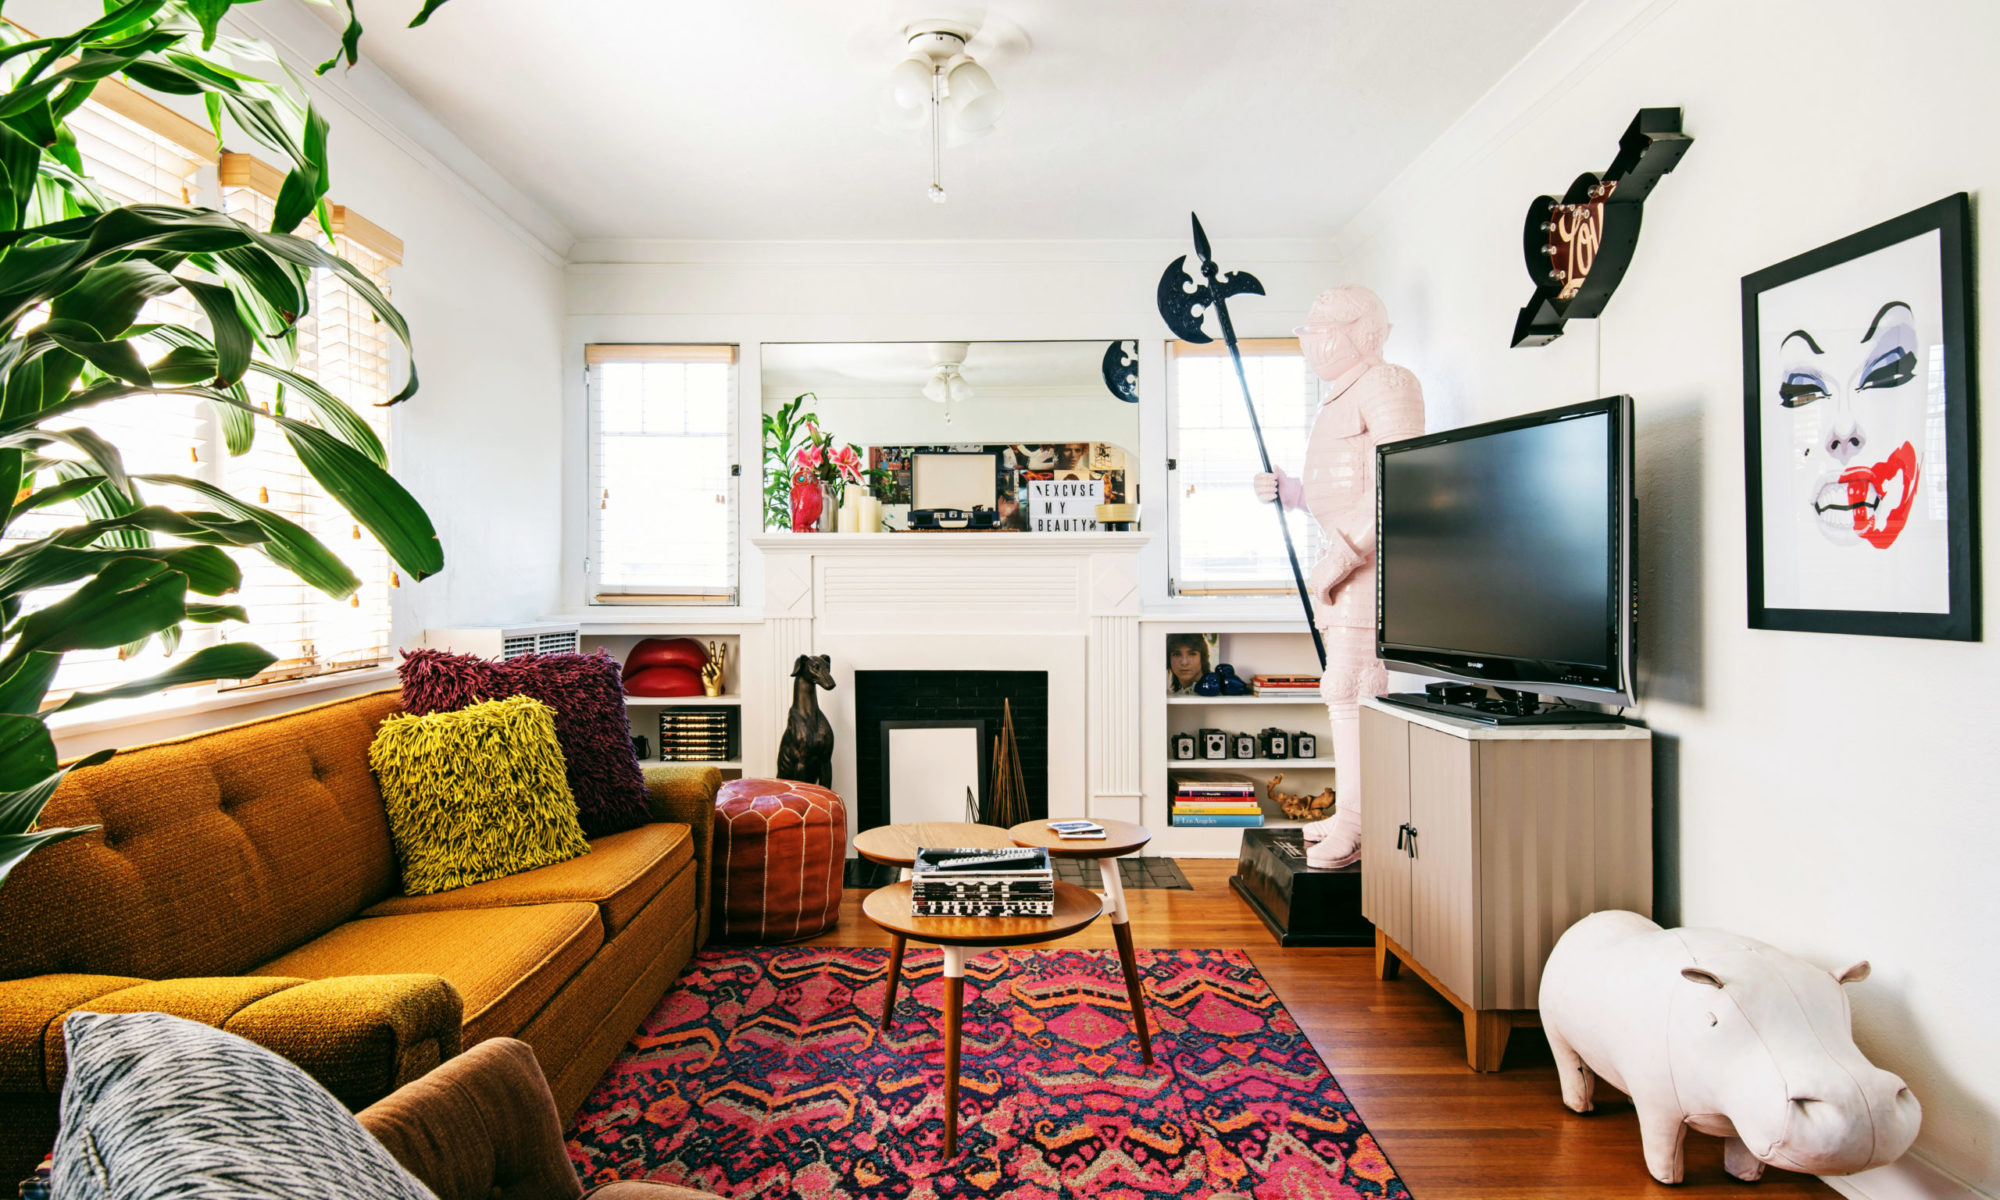 How to rent a private room as a short term rental